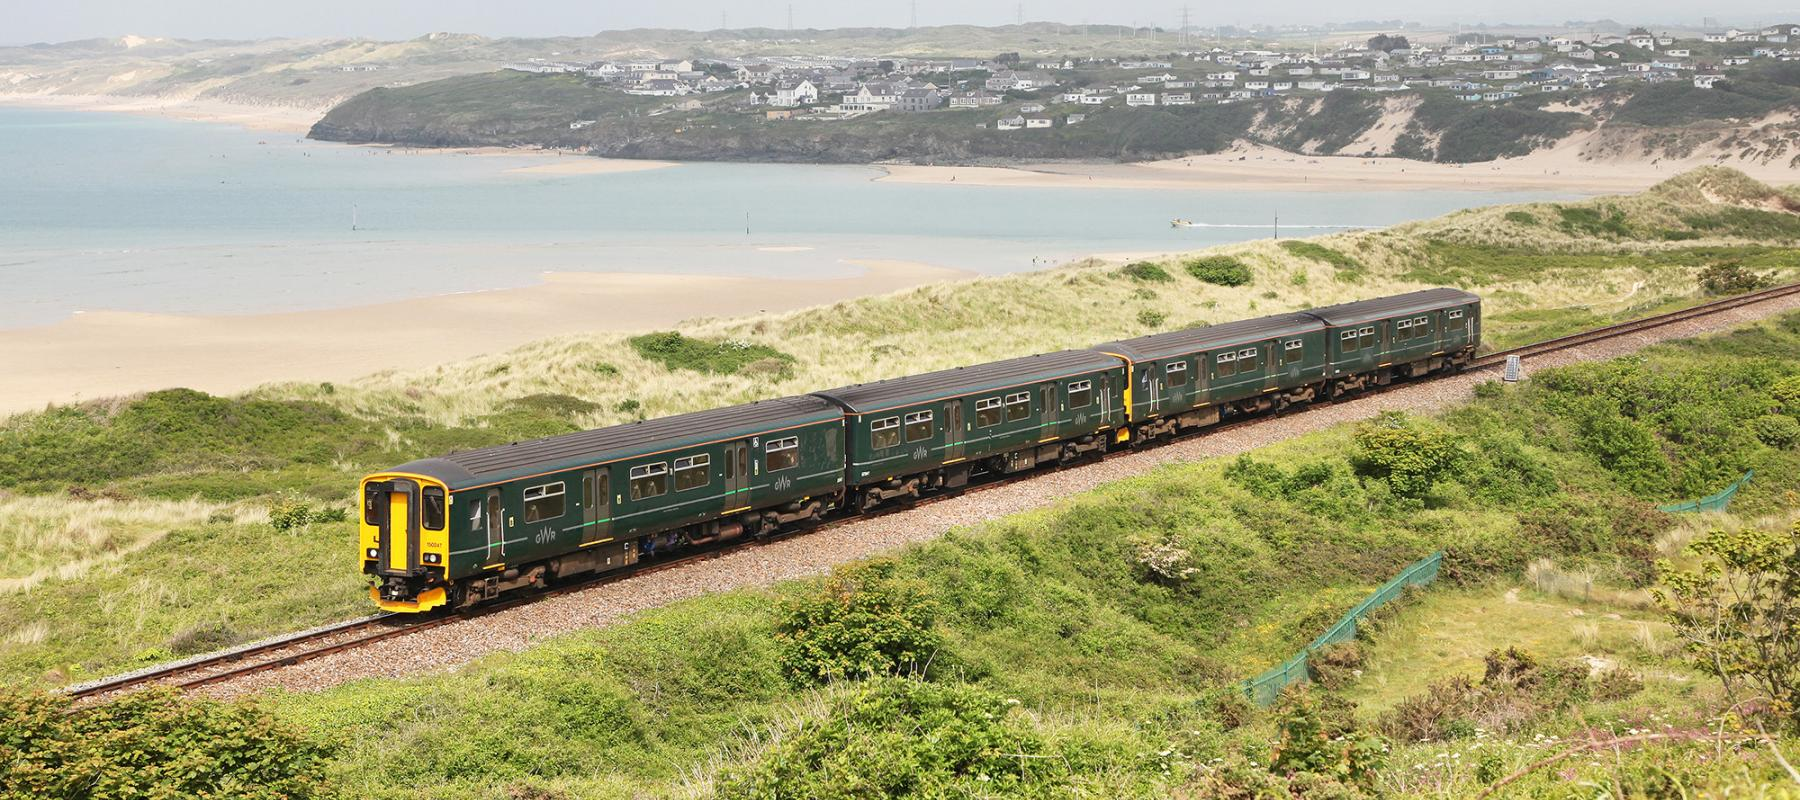 Train on the St Ives Bay Line with the beach and sea in the background